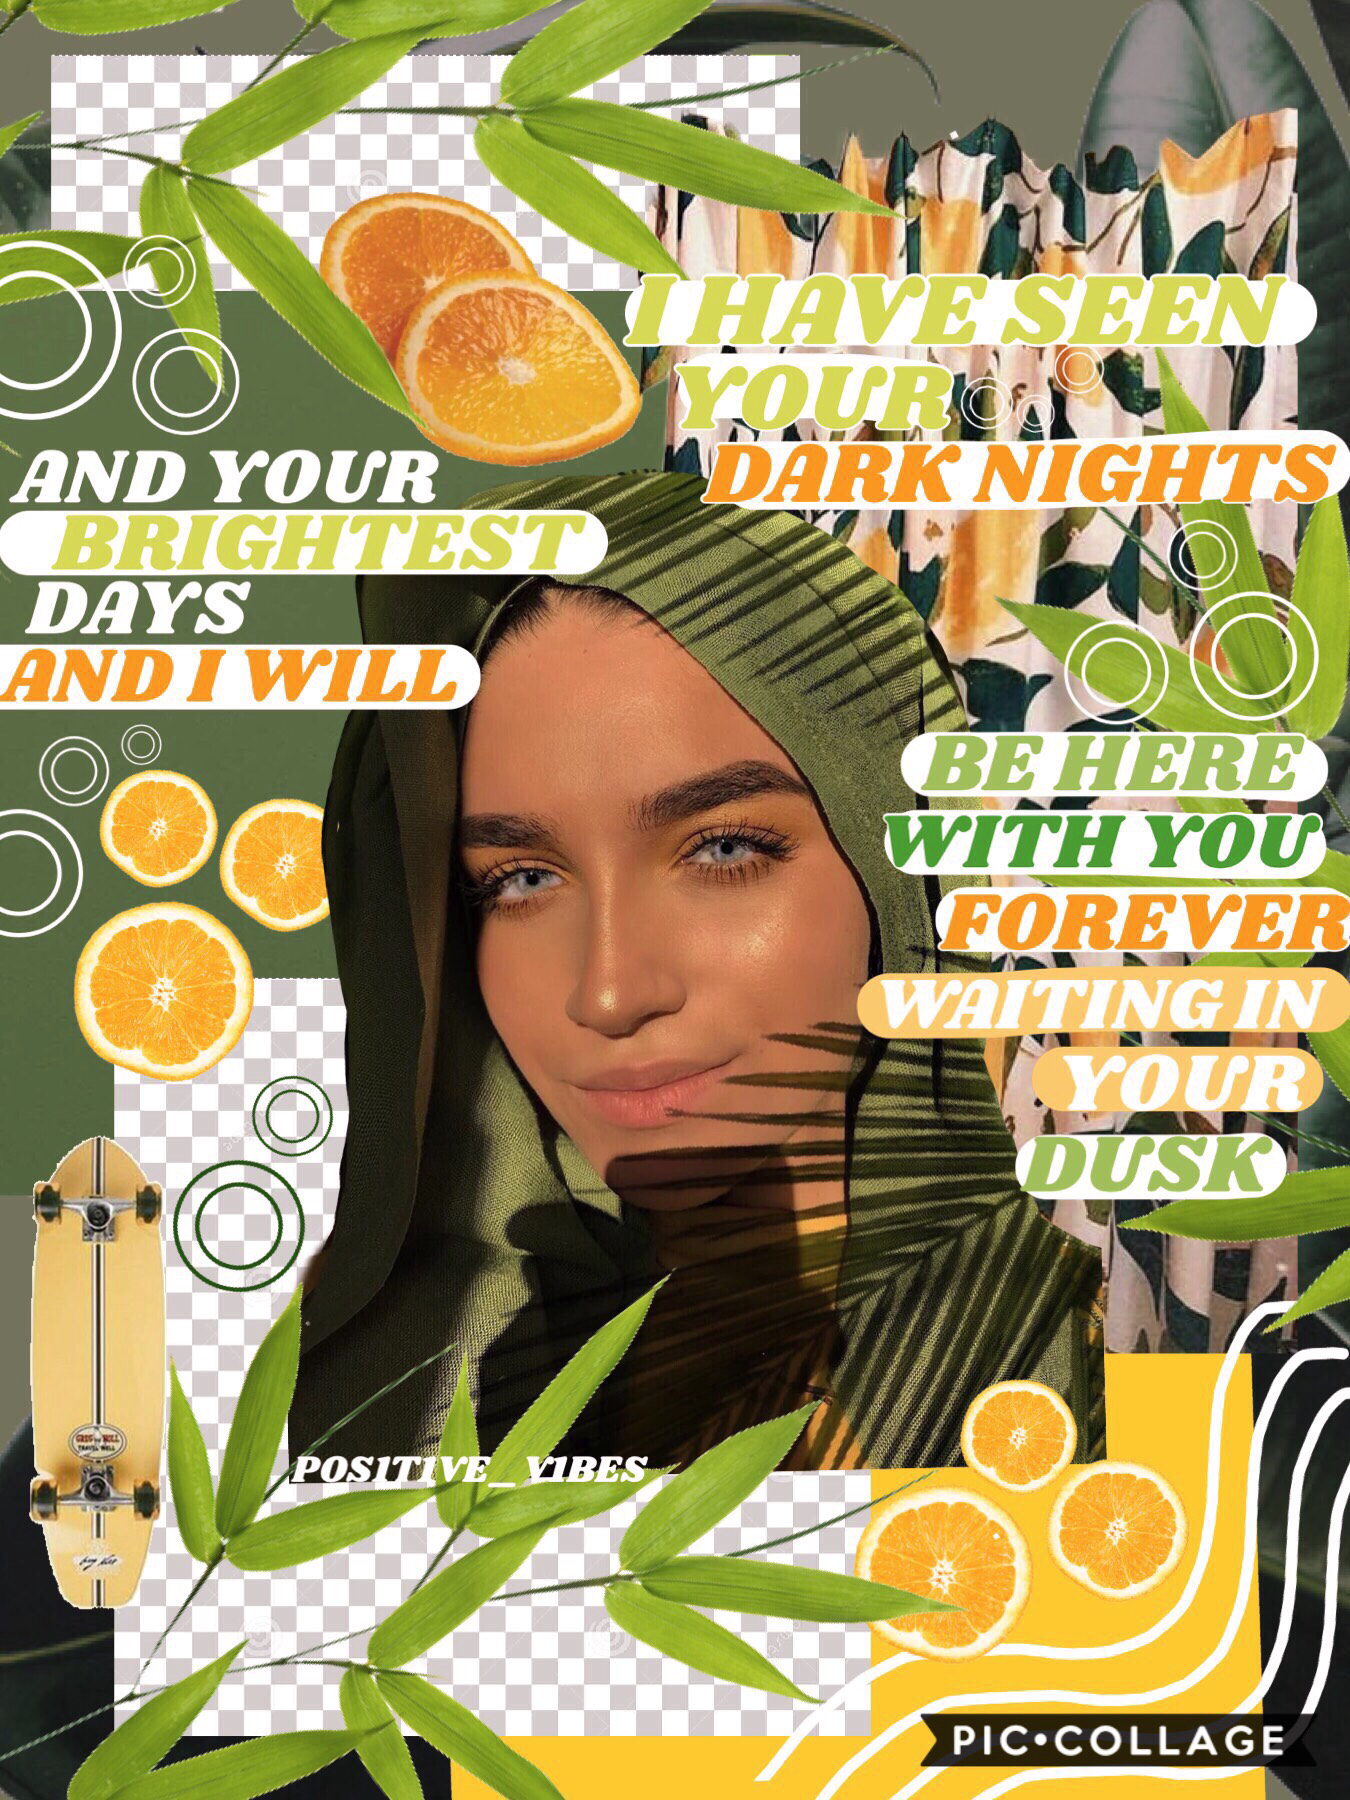 🍋finally a collage :)🍋my family stayed up till 2AM last night watching movies on Netflix & i'm so tired lol🍋PC kept on crashing on me making this edit,, it's so fruSTRATING like wth🍋 #PCONLY #QUOTES #COLLAGE #NETFLIX #PCEDITS #CRASHING #LEMONS #WTHAMI #TY